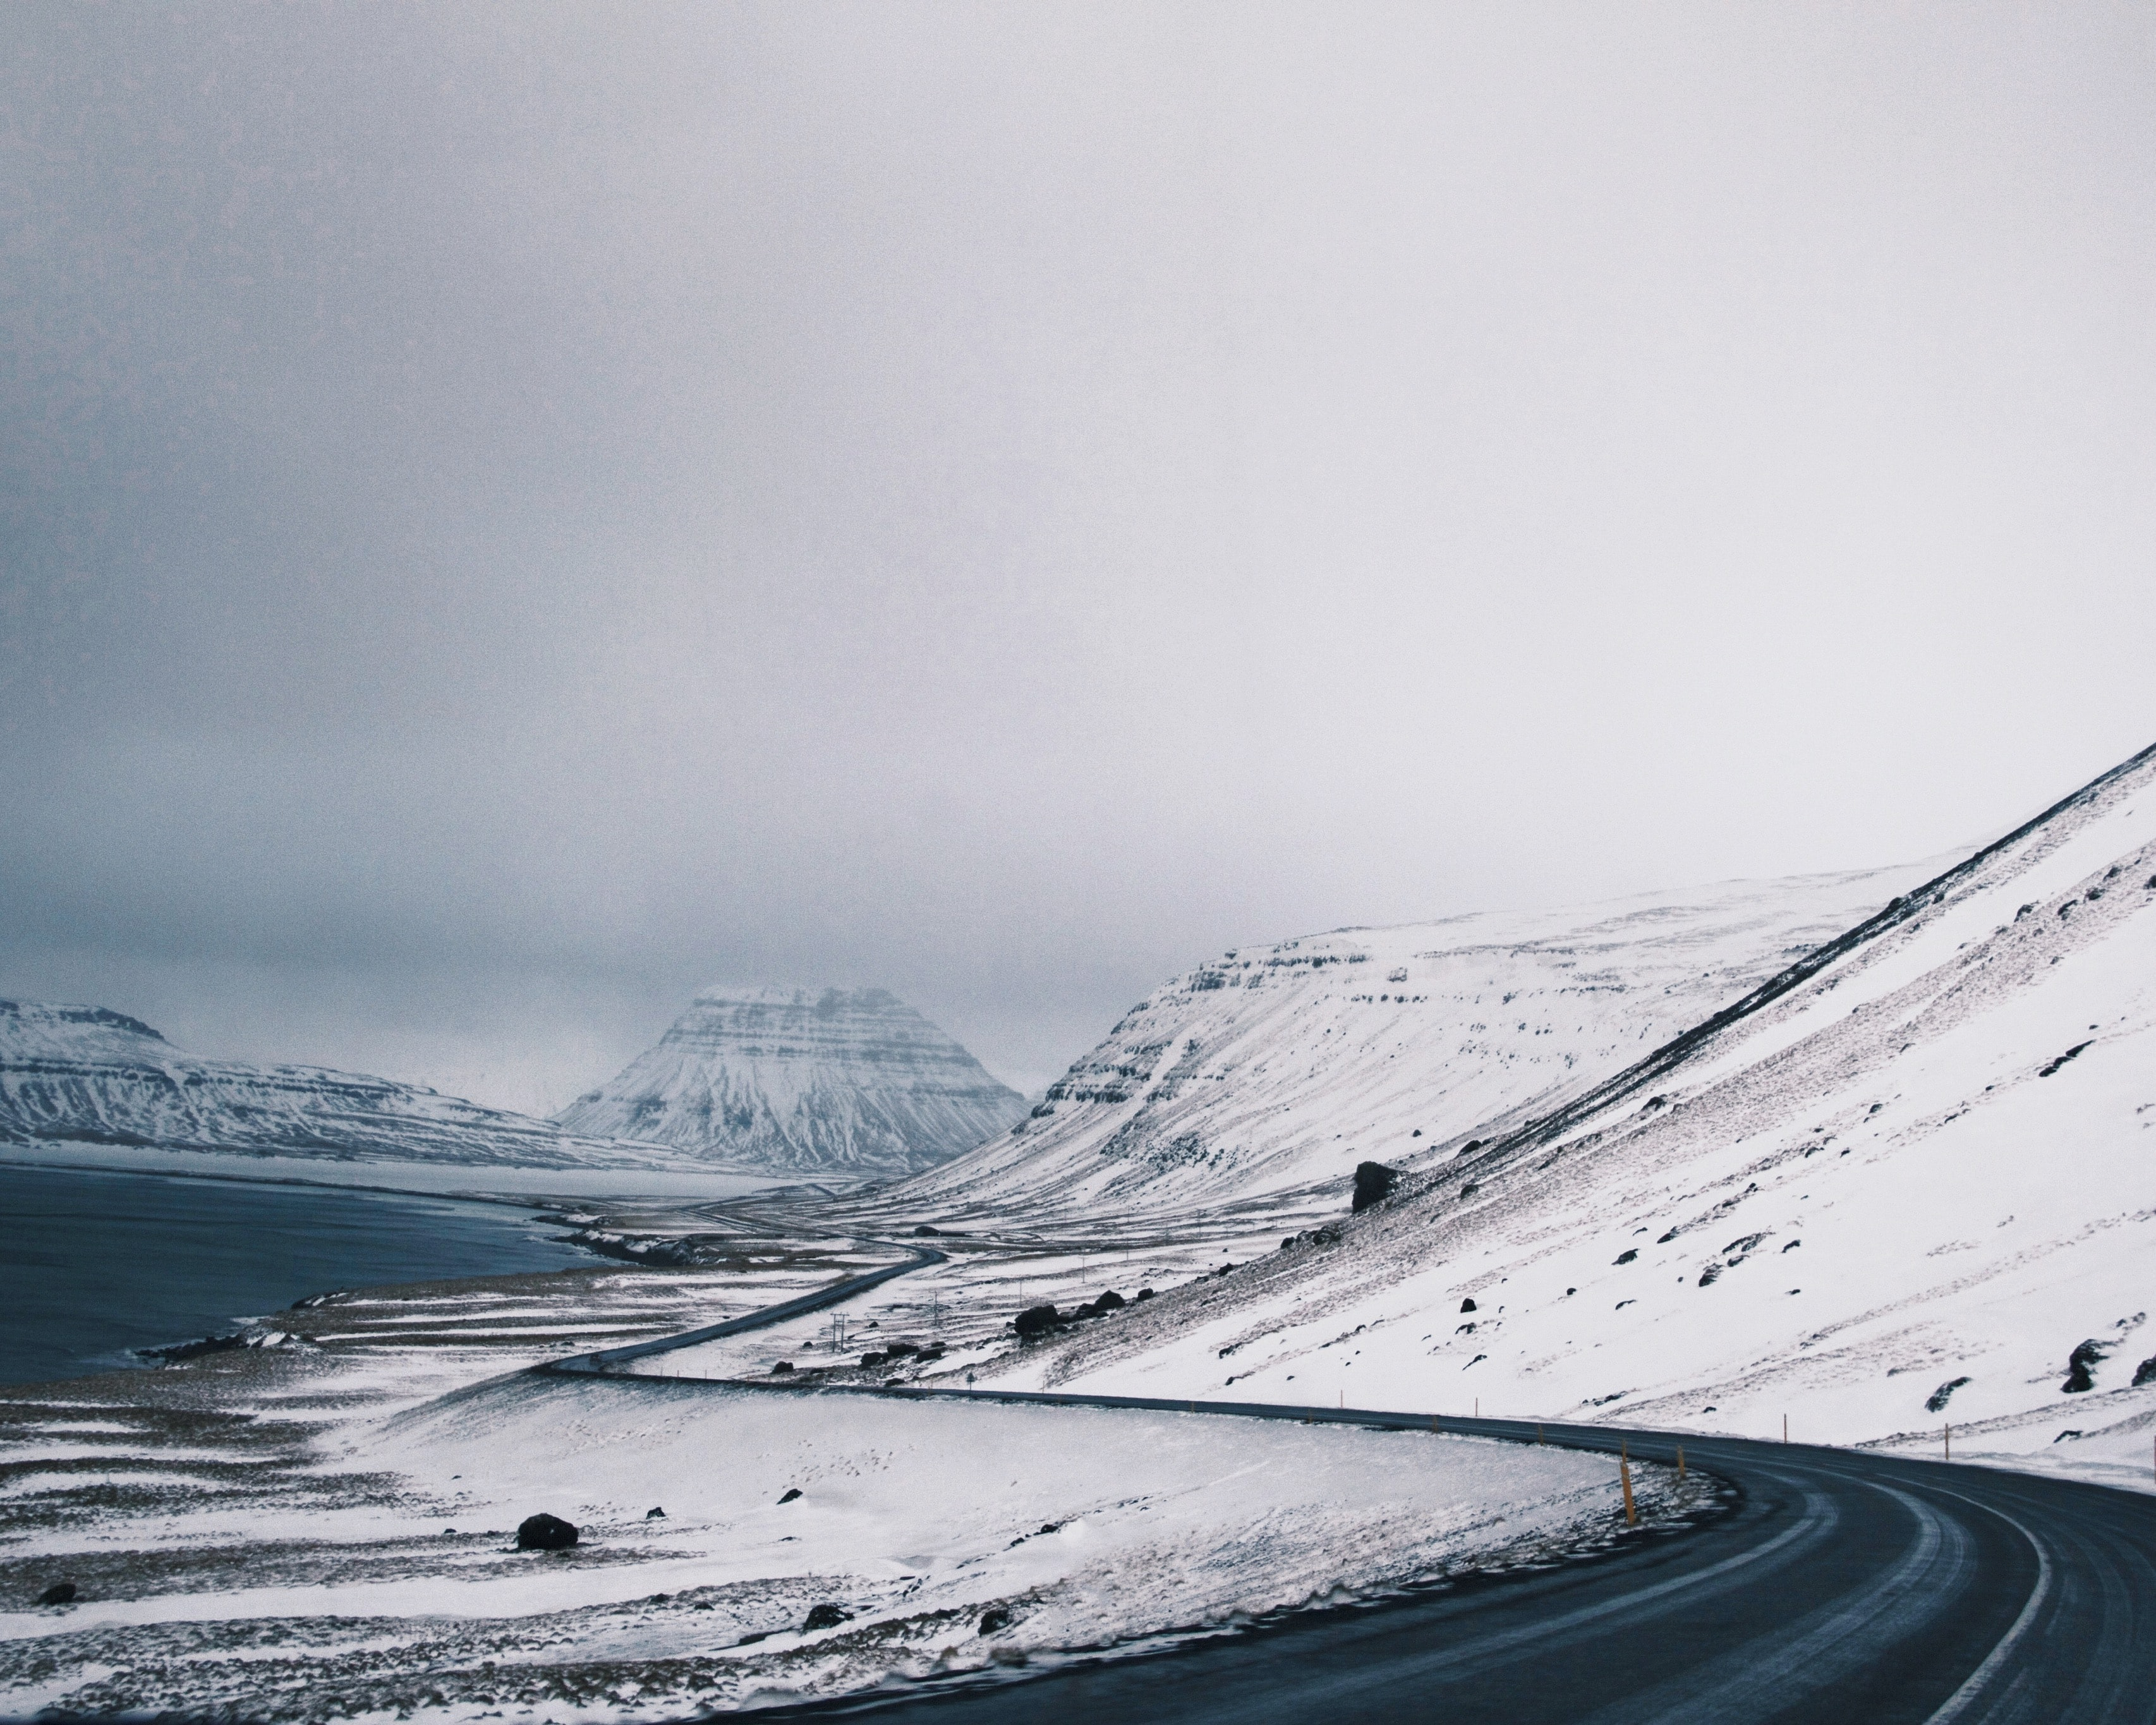 Winding winter roads through snowy mountains in Iceland